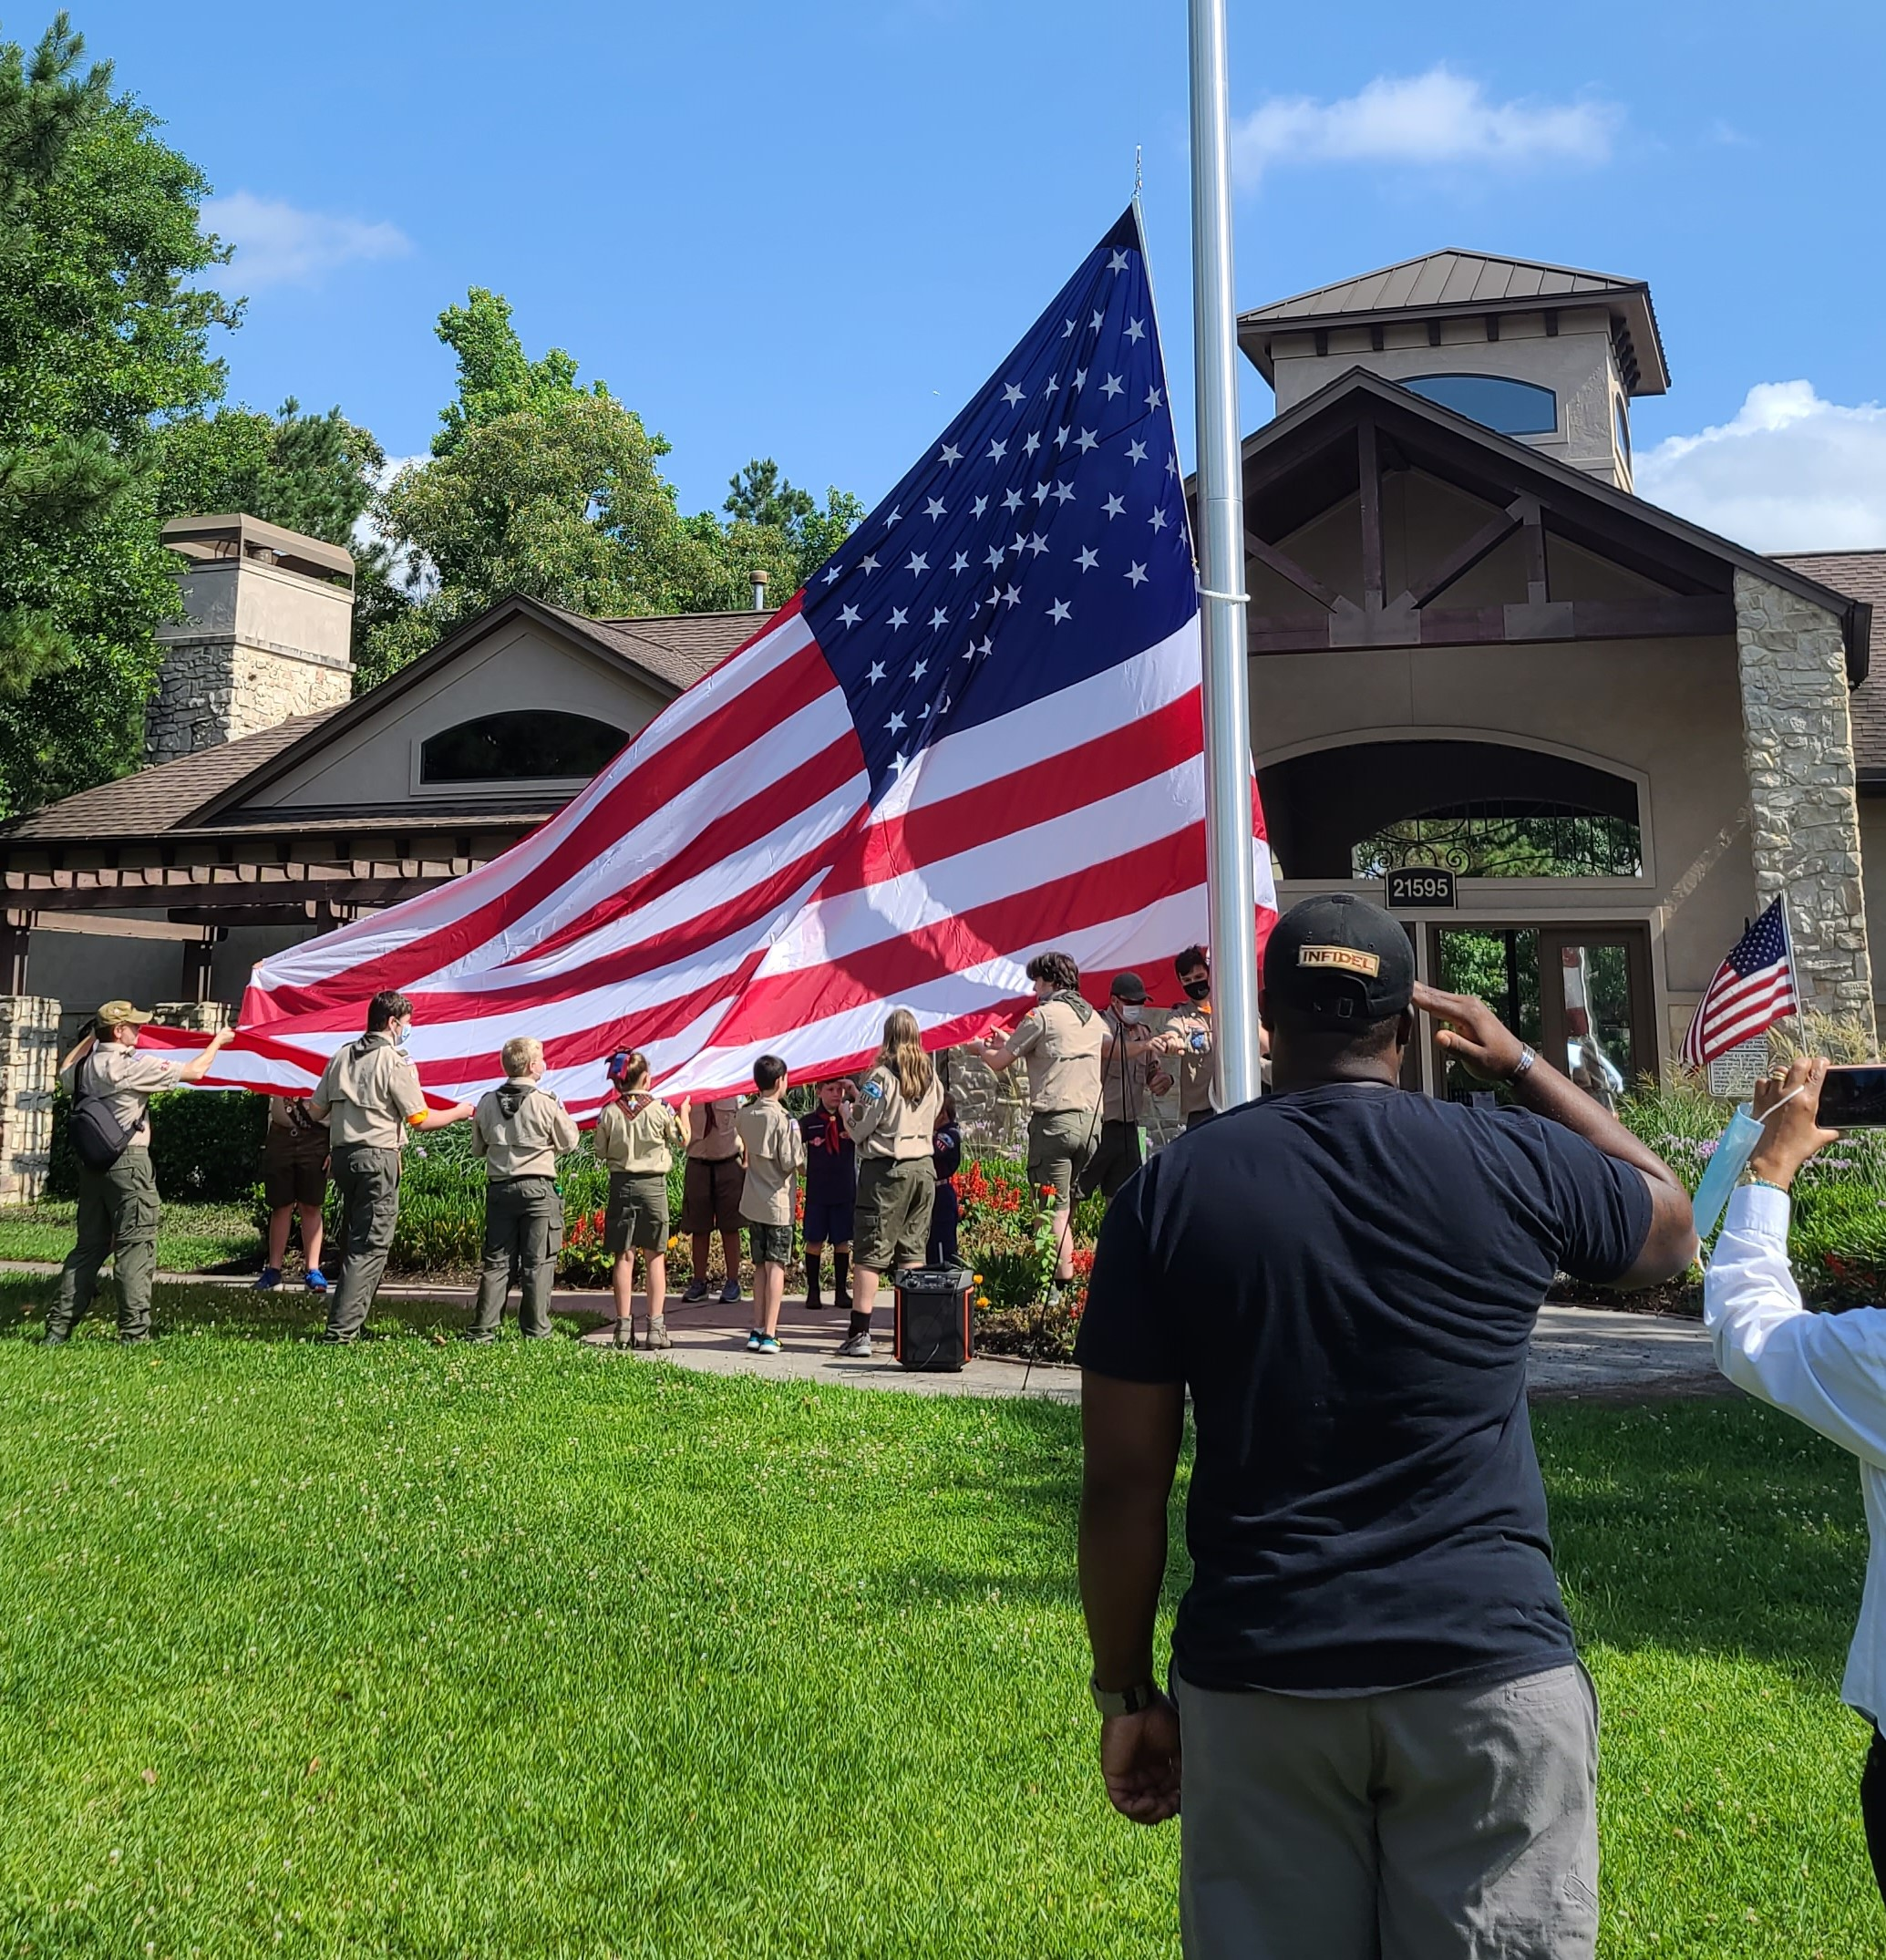 Memorial Day 2021 Fallen Heroes Flag Pole Dedication Ceremony - May 31, 2021 thumbnail